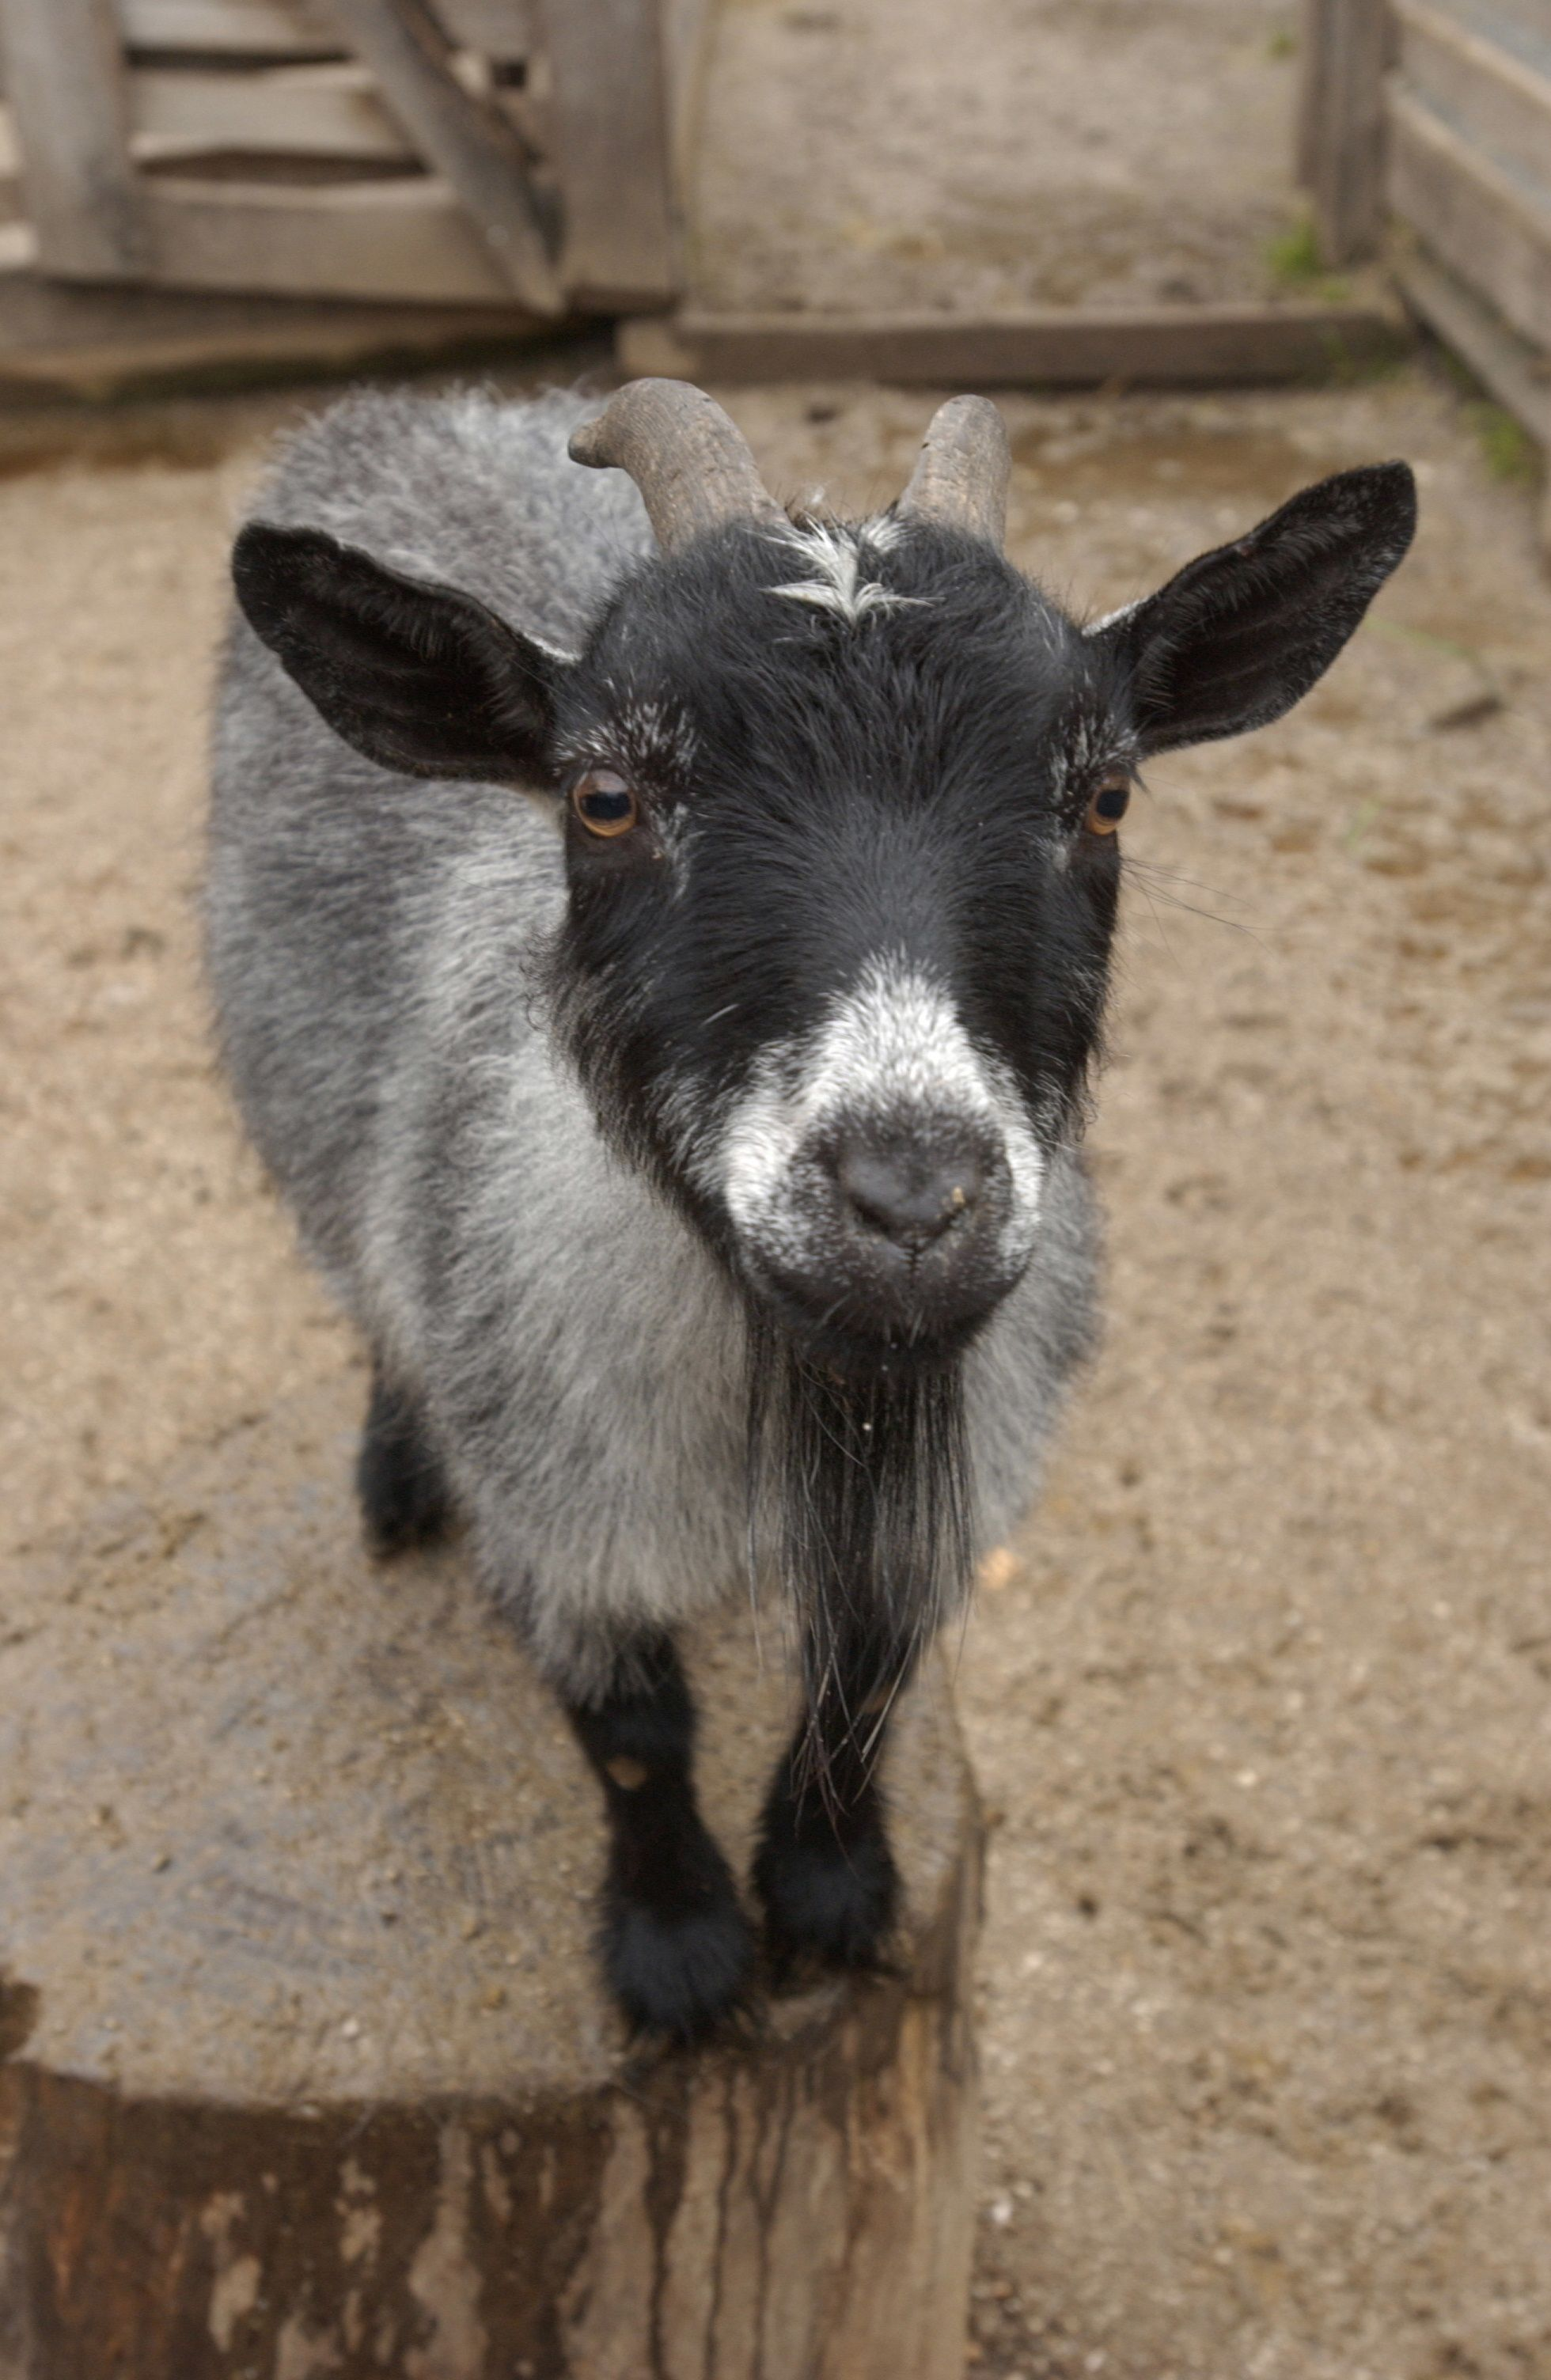 Cinder the pygmy goat at the akron zoo pygmy goat baby